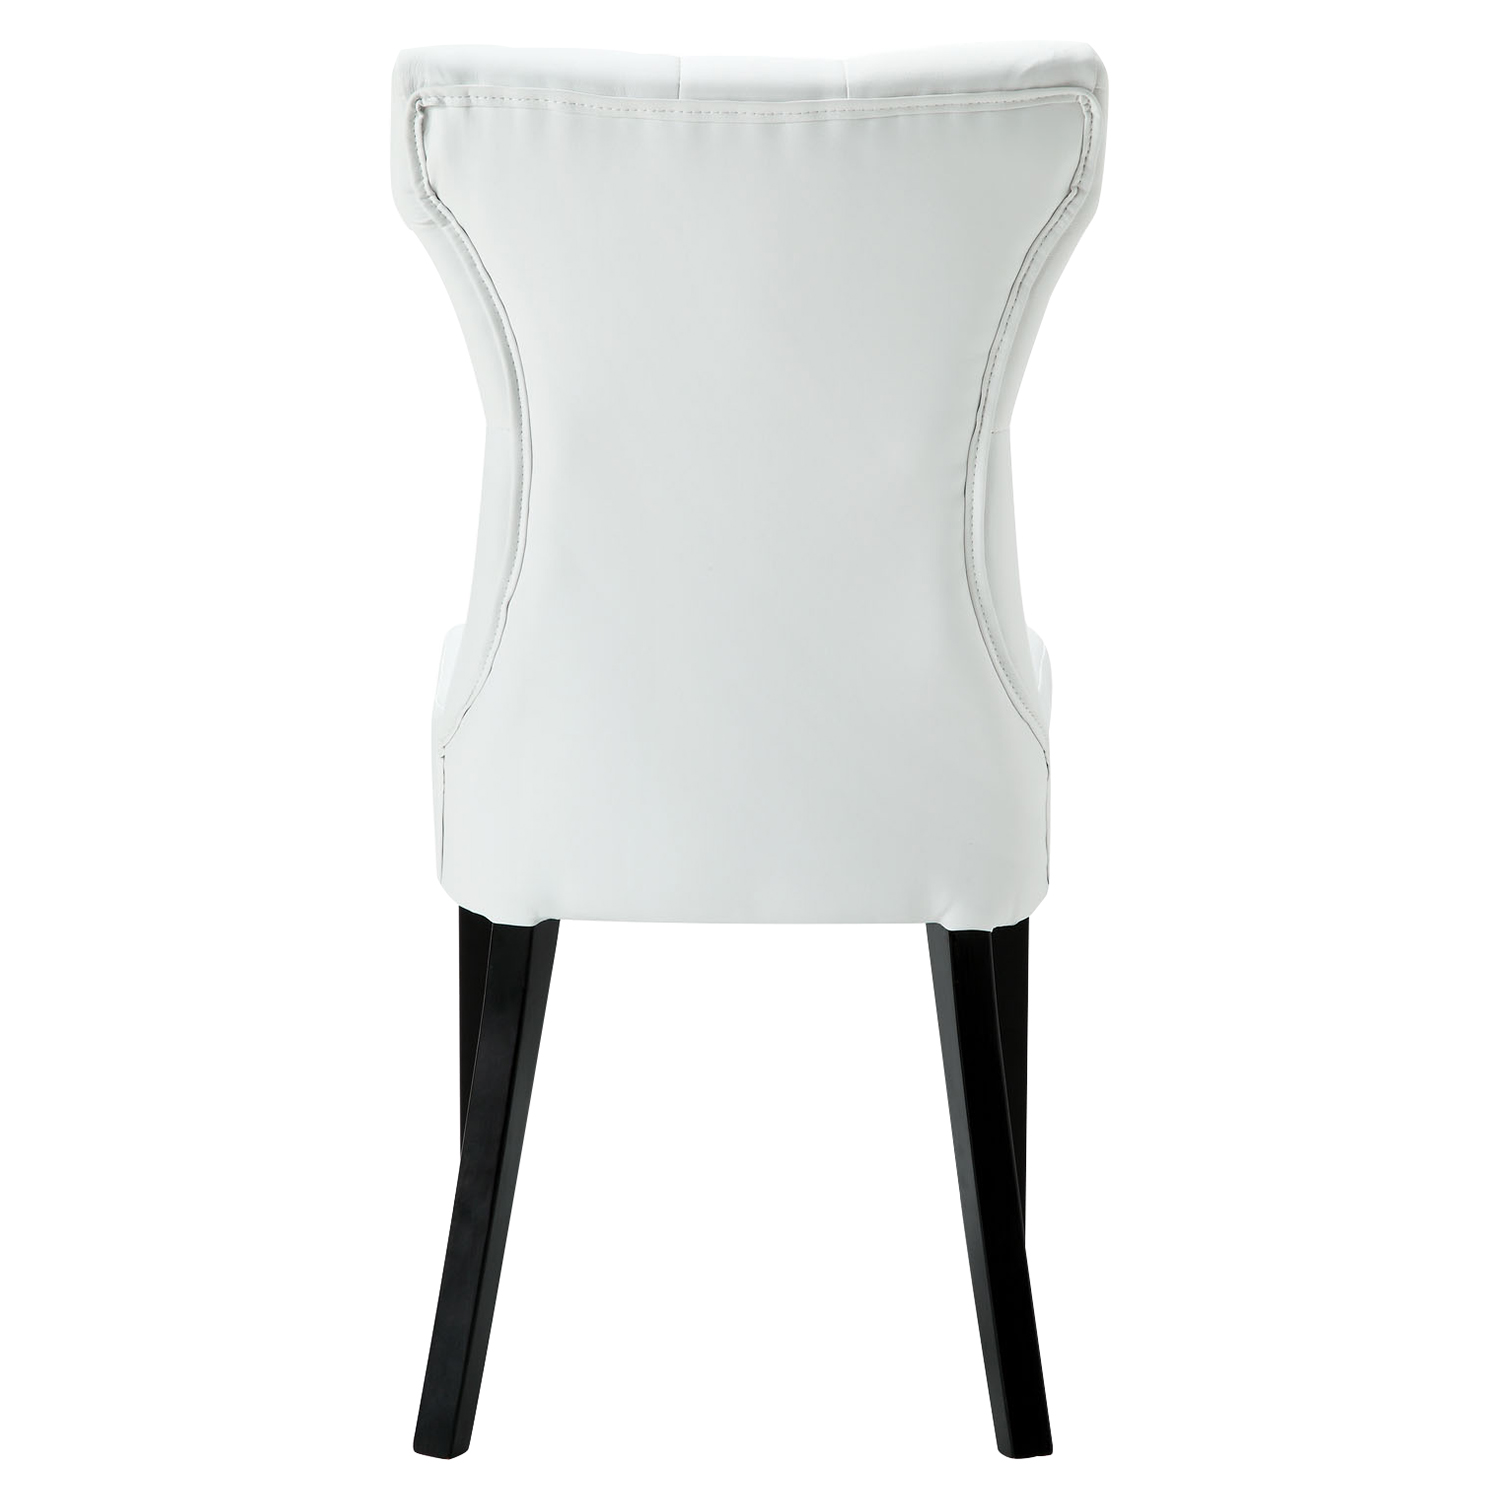 Silhouette Faux Leather Dining Chairs - Button Tufted, White (Set of 2) - EEI-911-WHI